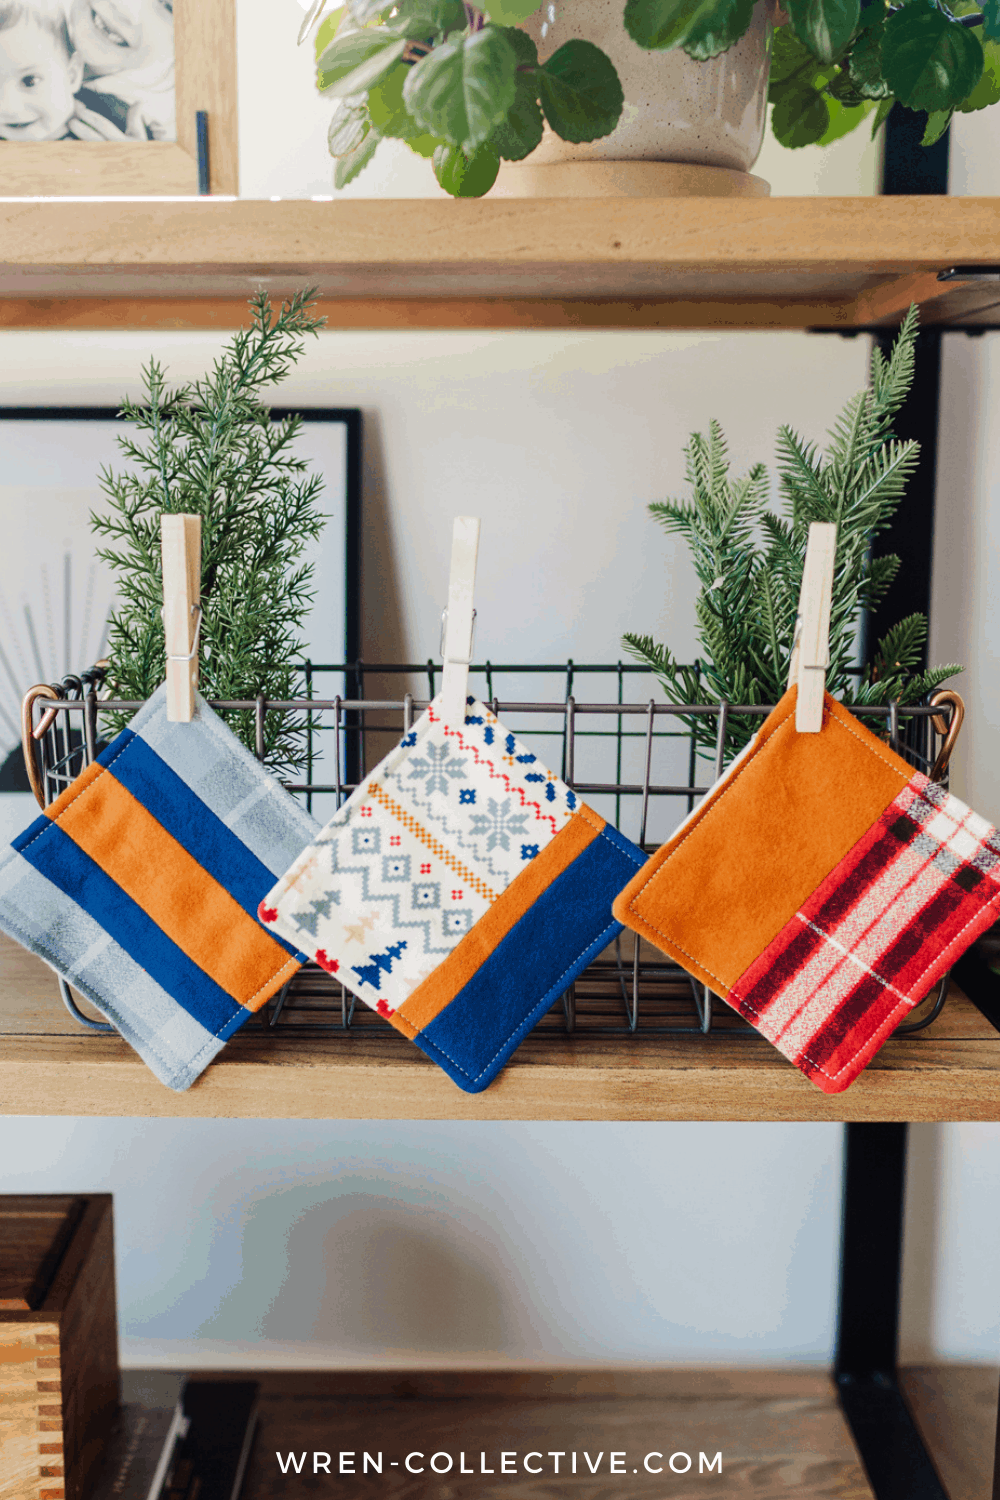 An image of three fabric scrap coasters hanging on a shelf. This free fabric scrap project tutorial is from Rachel of Wren Collective.